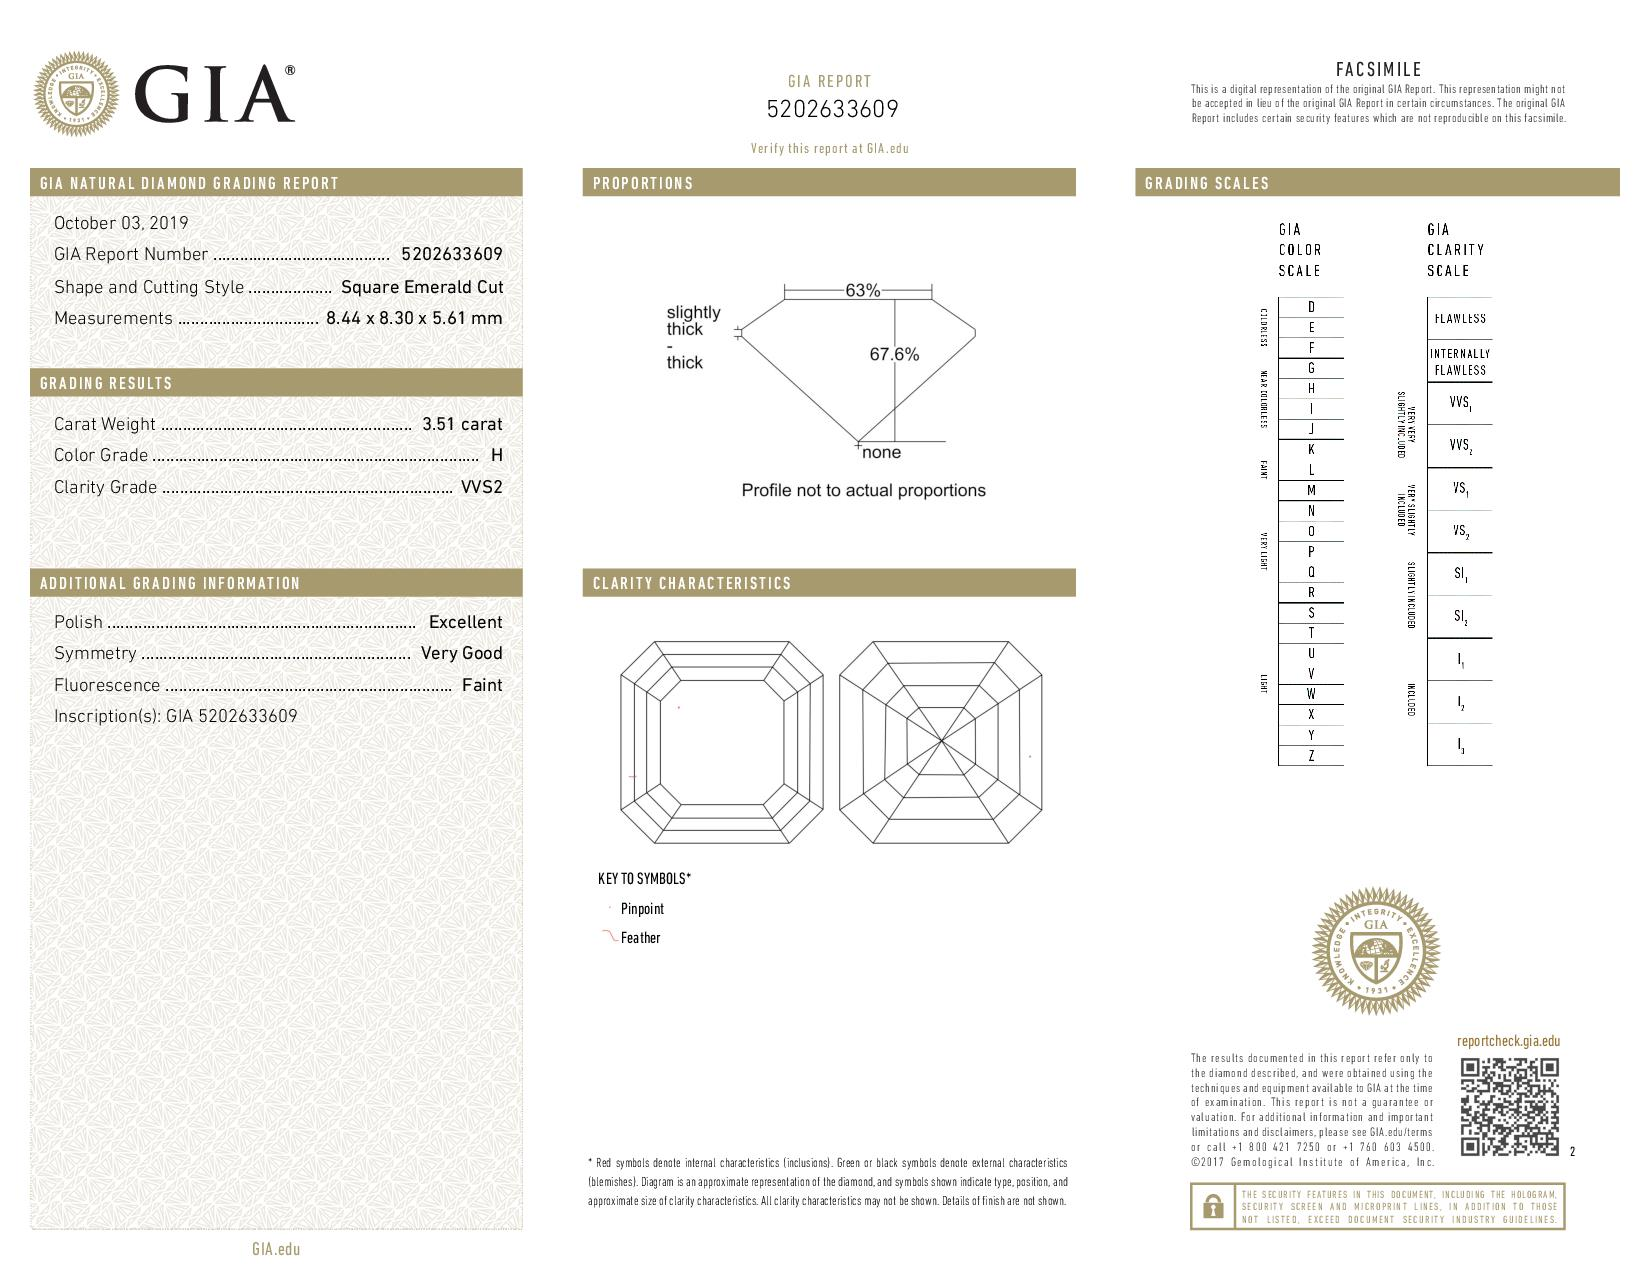 This is a 3.51 carat asscher shape, H color, VVS2 clarity natural diamond accompanied by a GIA grading report.